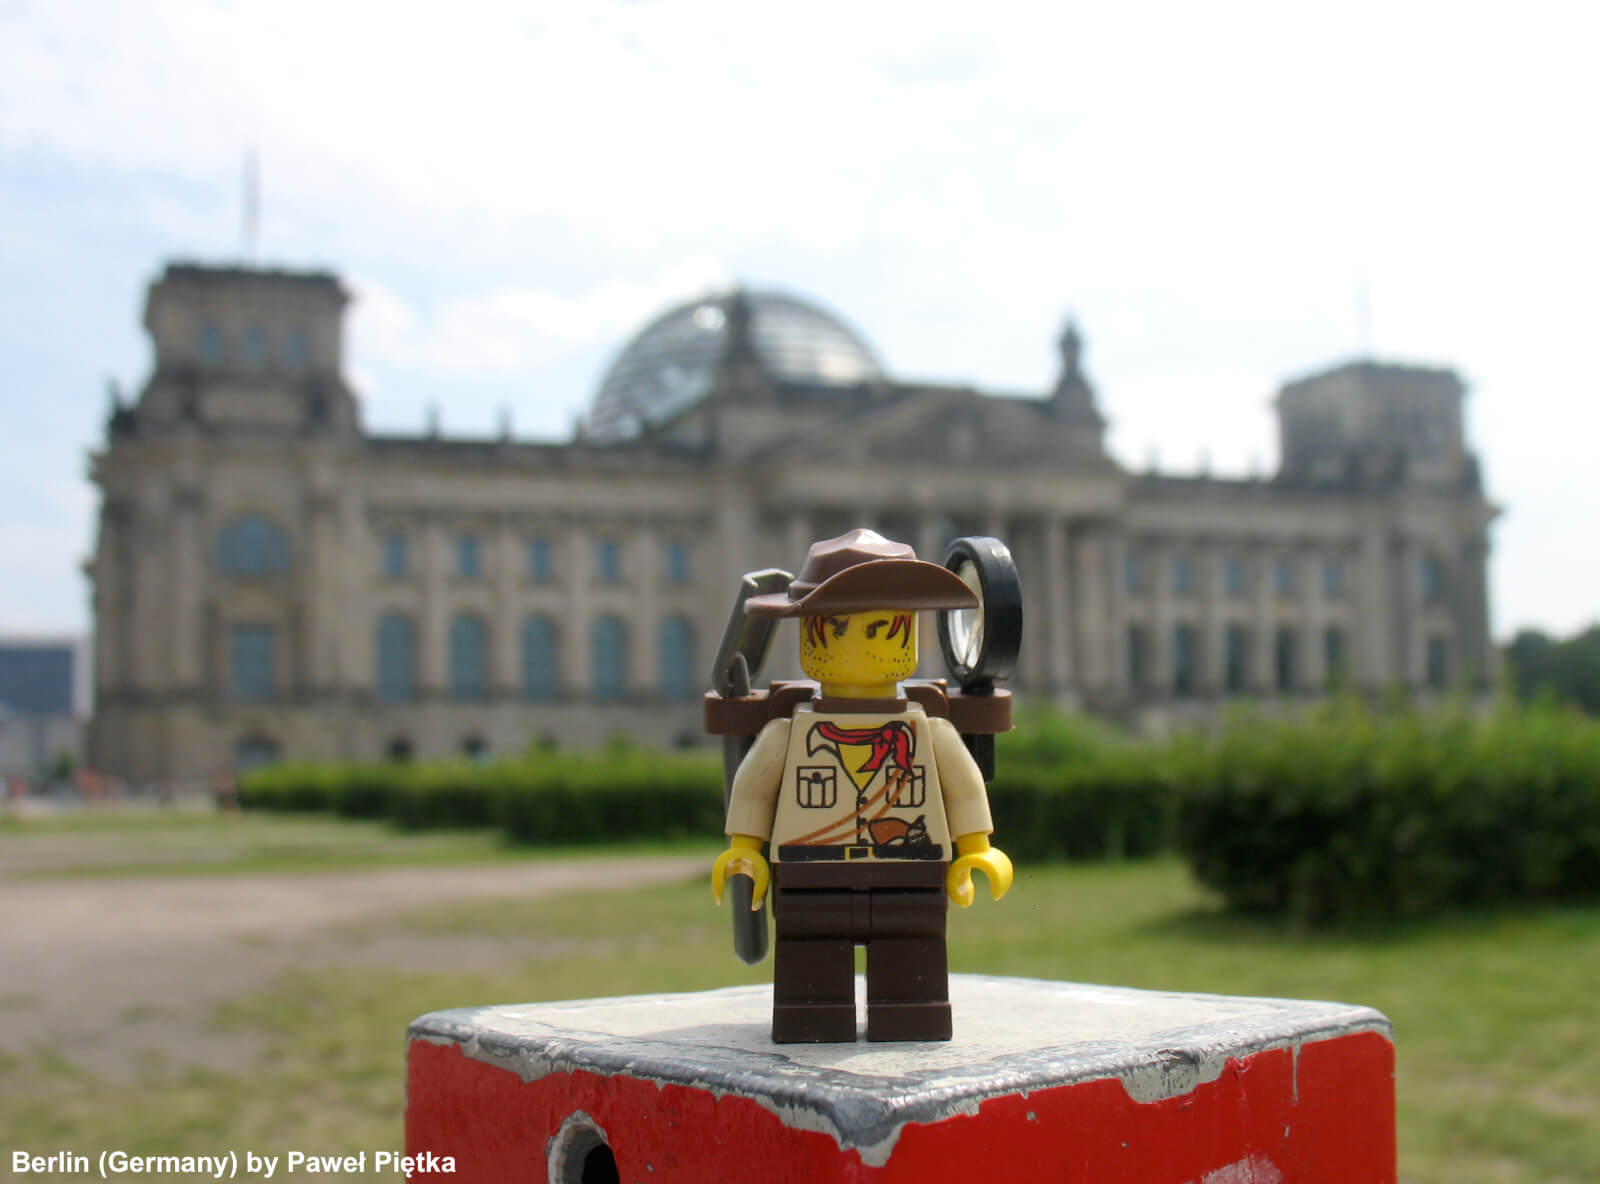 Berlin (Germany) - Reichstag Parliament